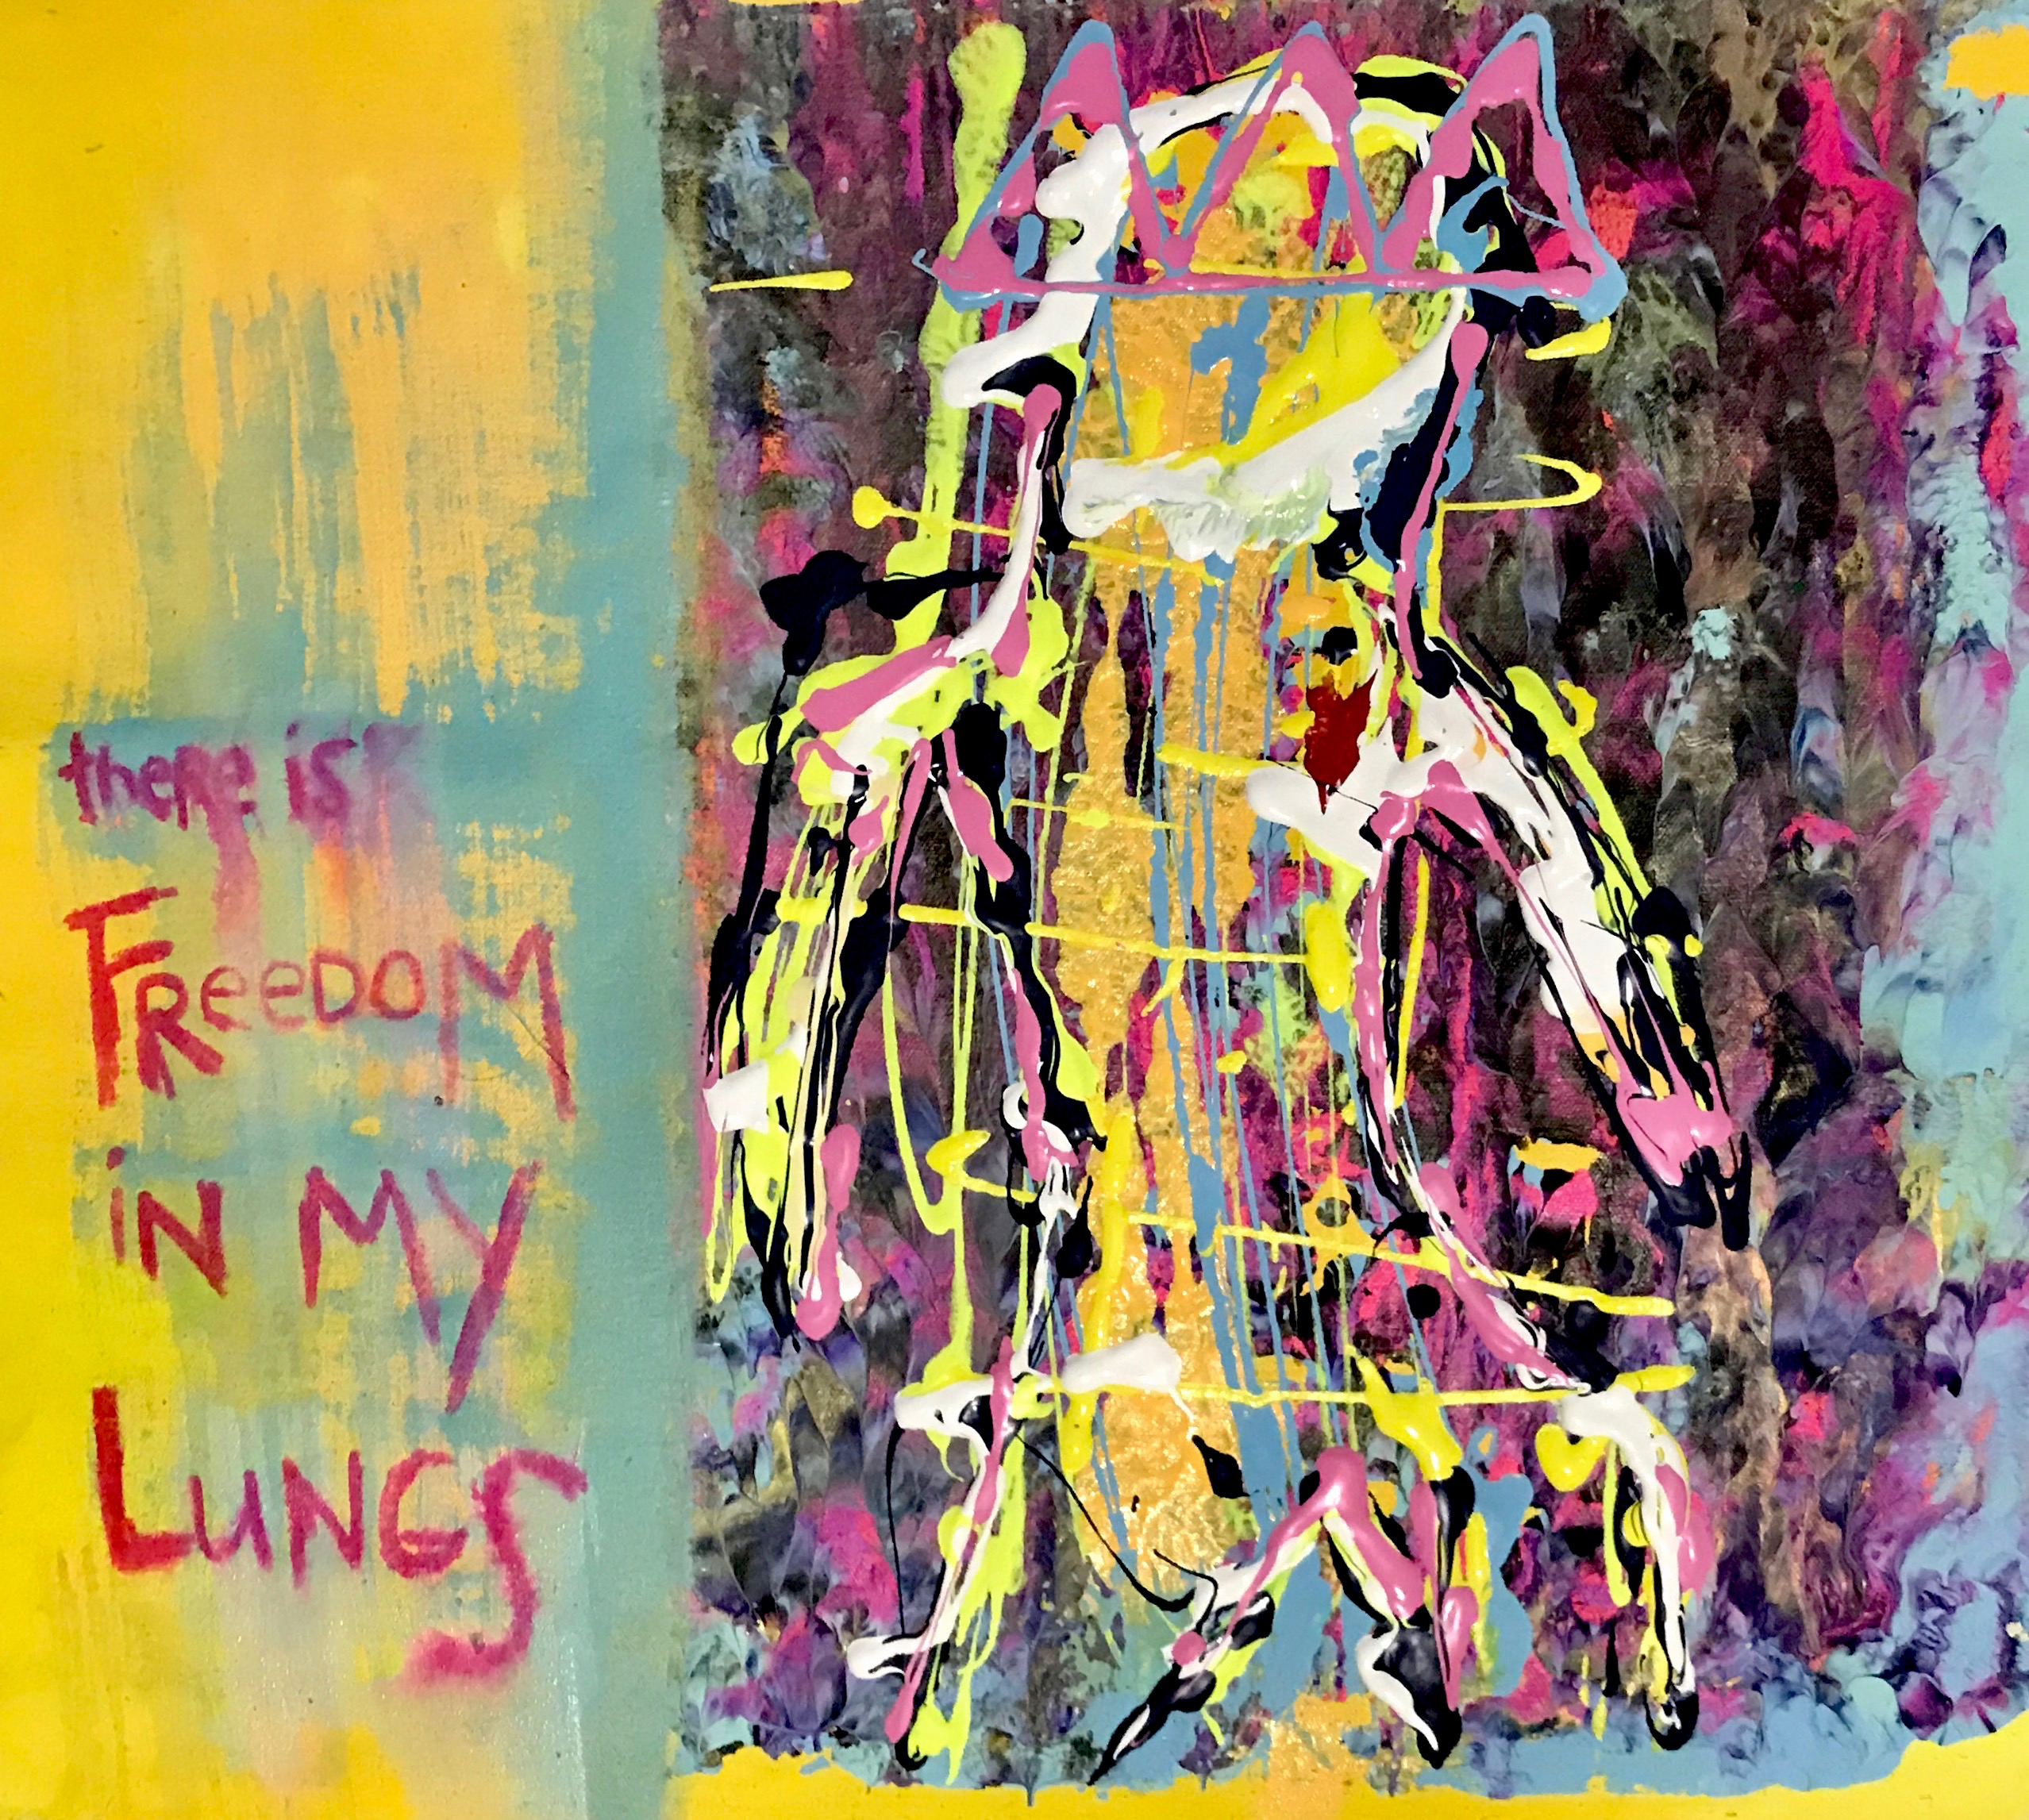 """There is Freedom in my Lungs"""